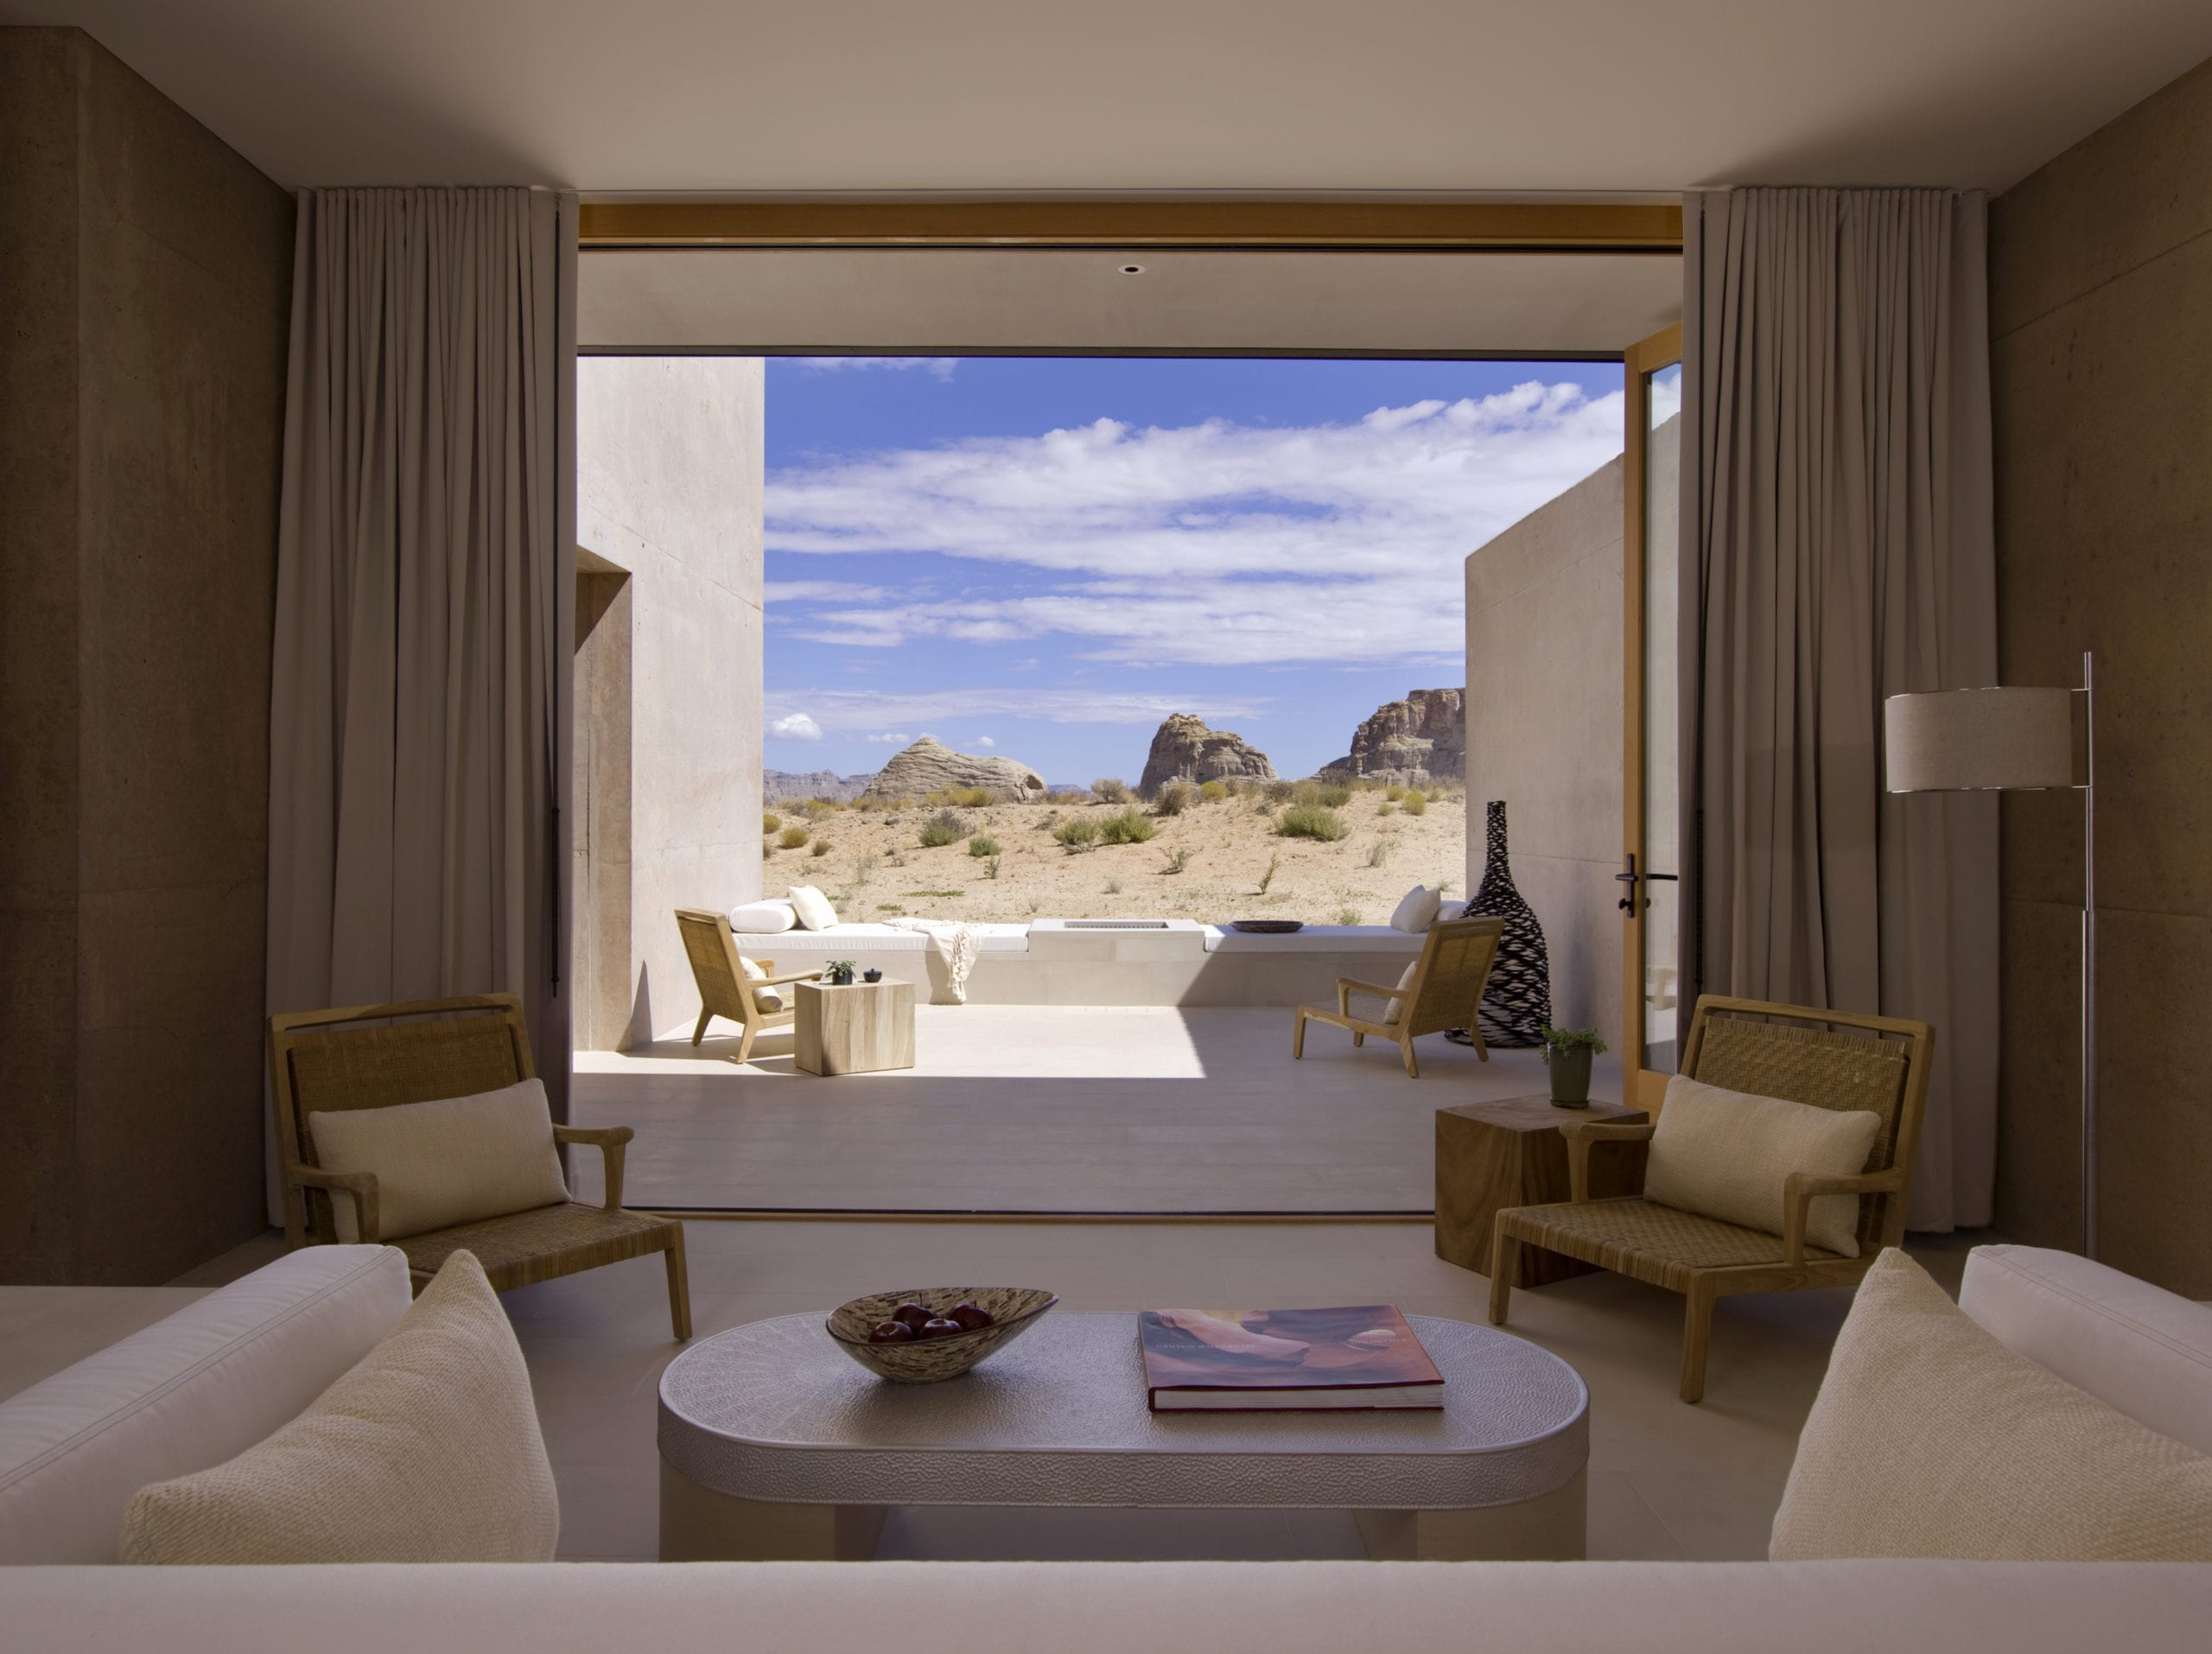 Interior of Suite Room with View to Desert Amangiri USA